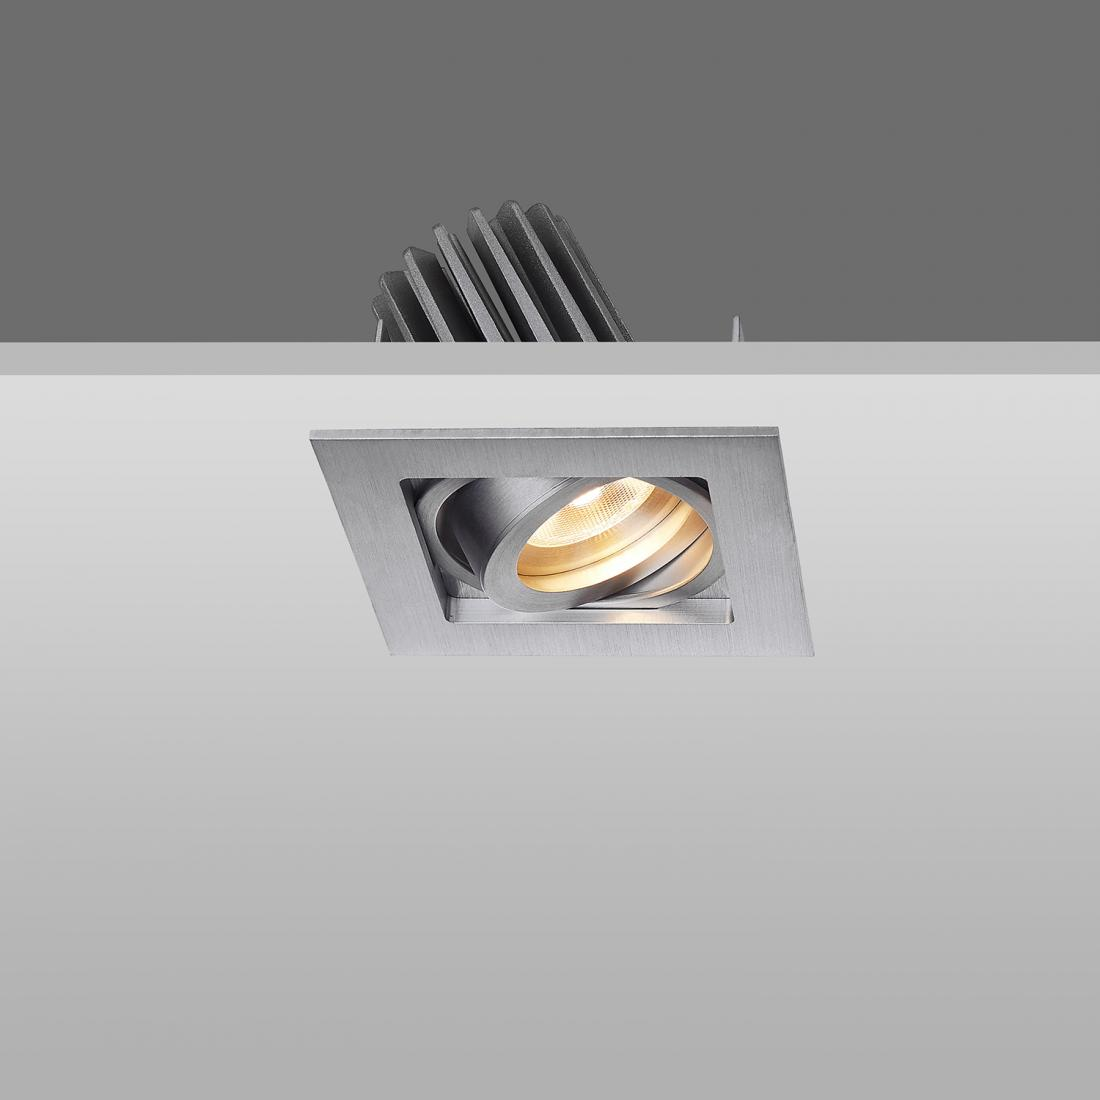 square trim 7w spot light downlight